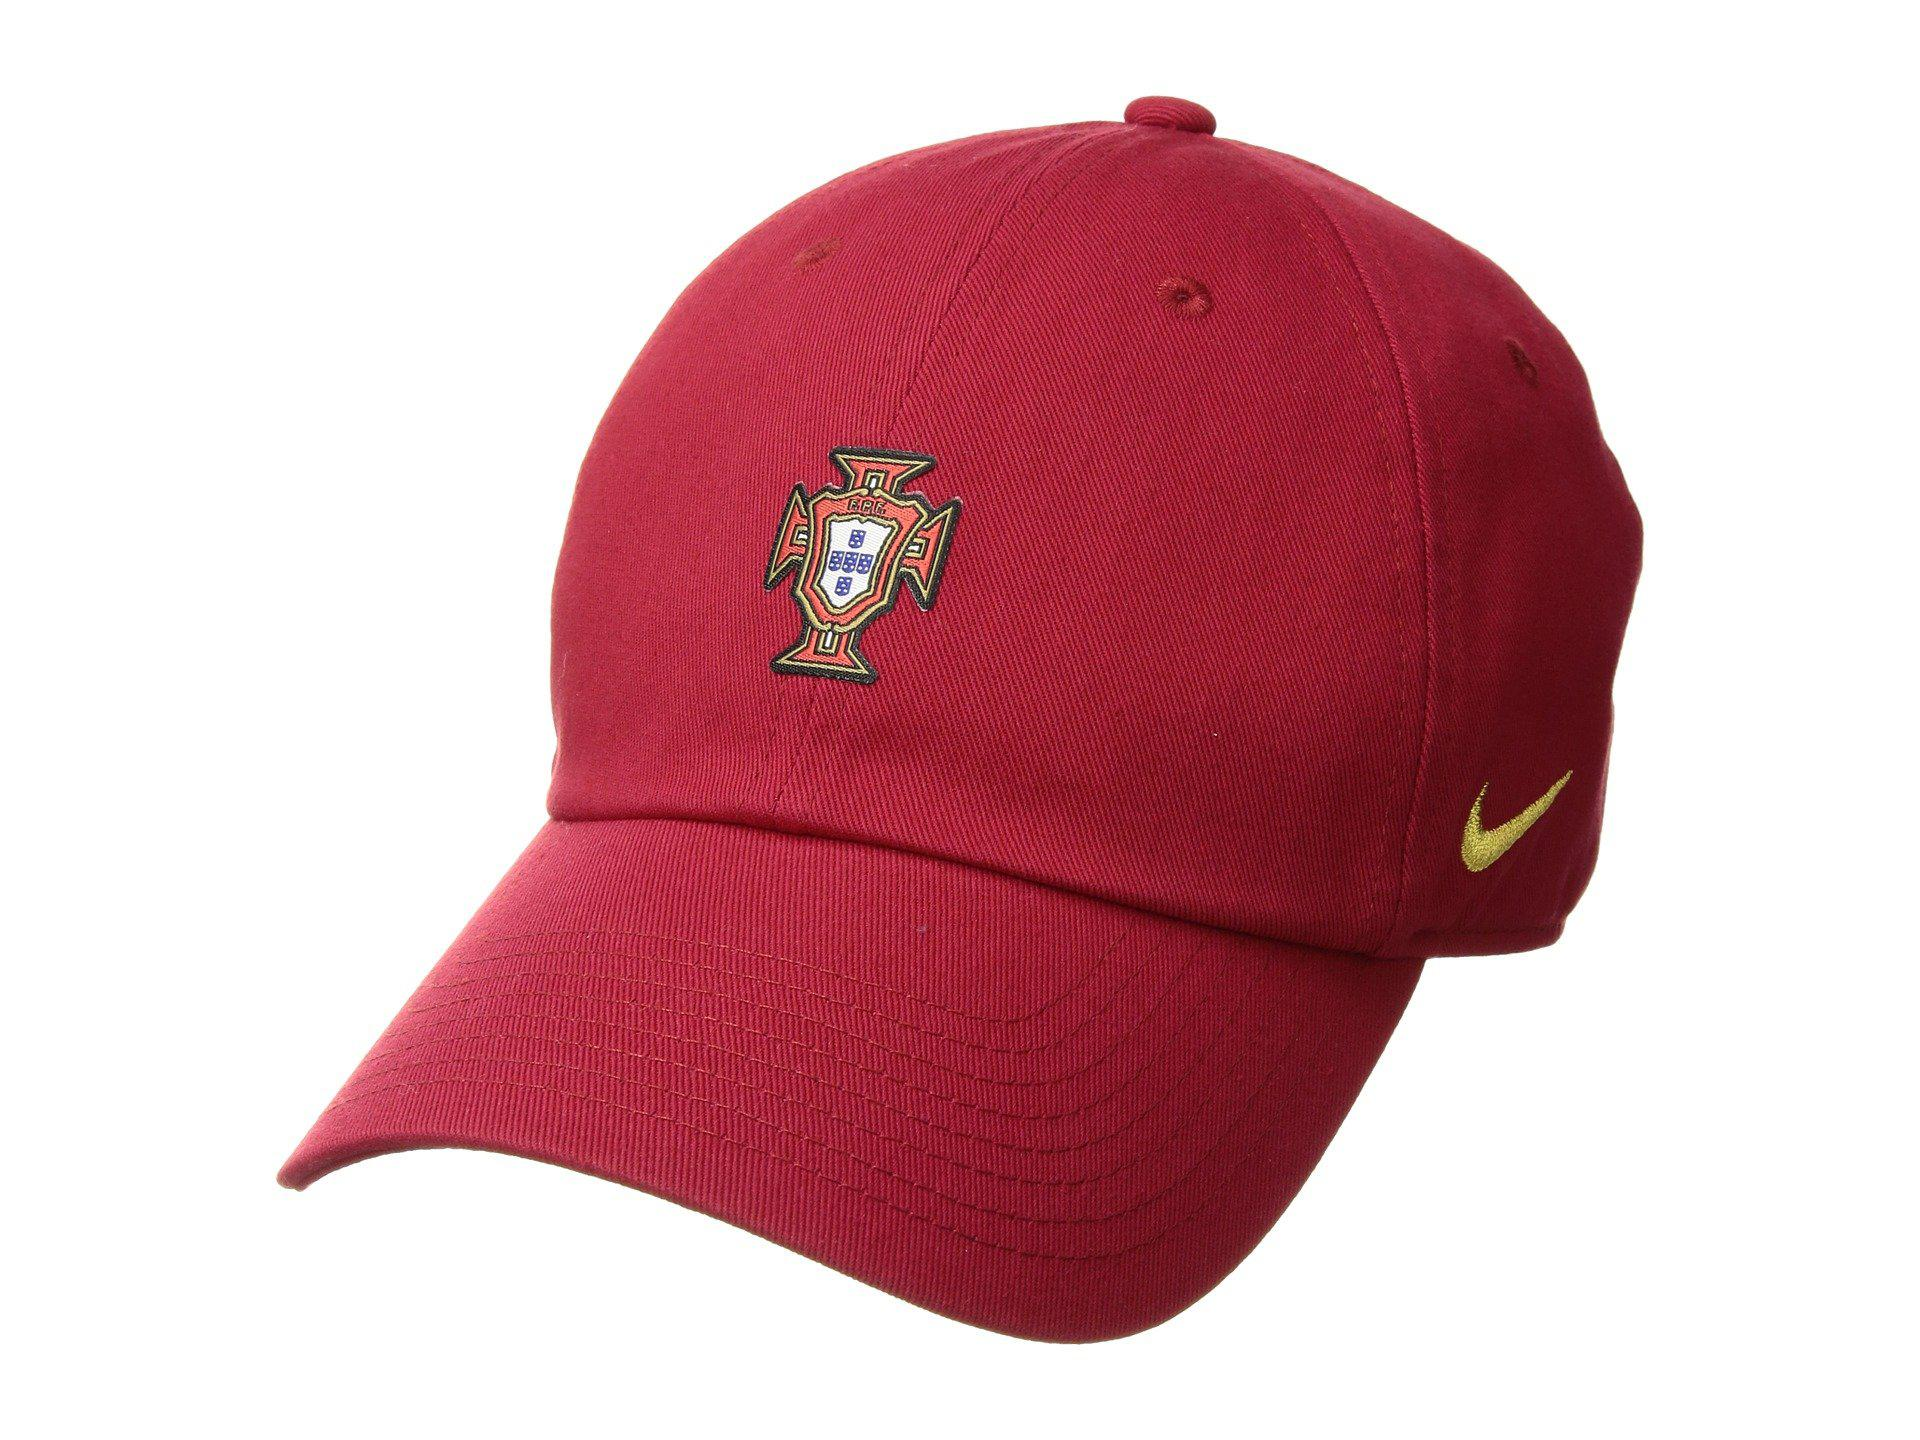 Lyst - Nike Fpf Portugal Heritage 86 Cap Core in Red for Men 11a8b9aee2c